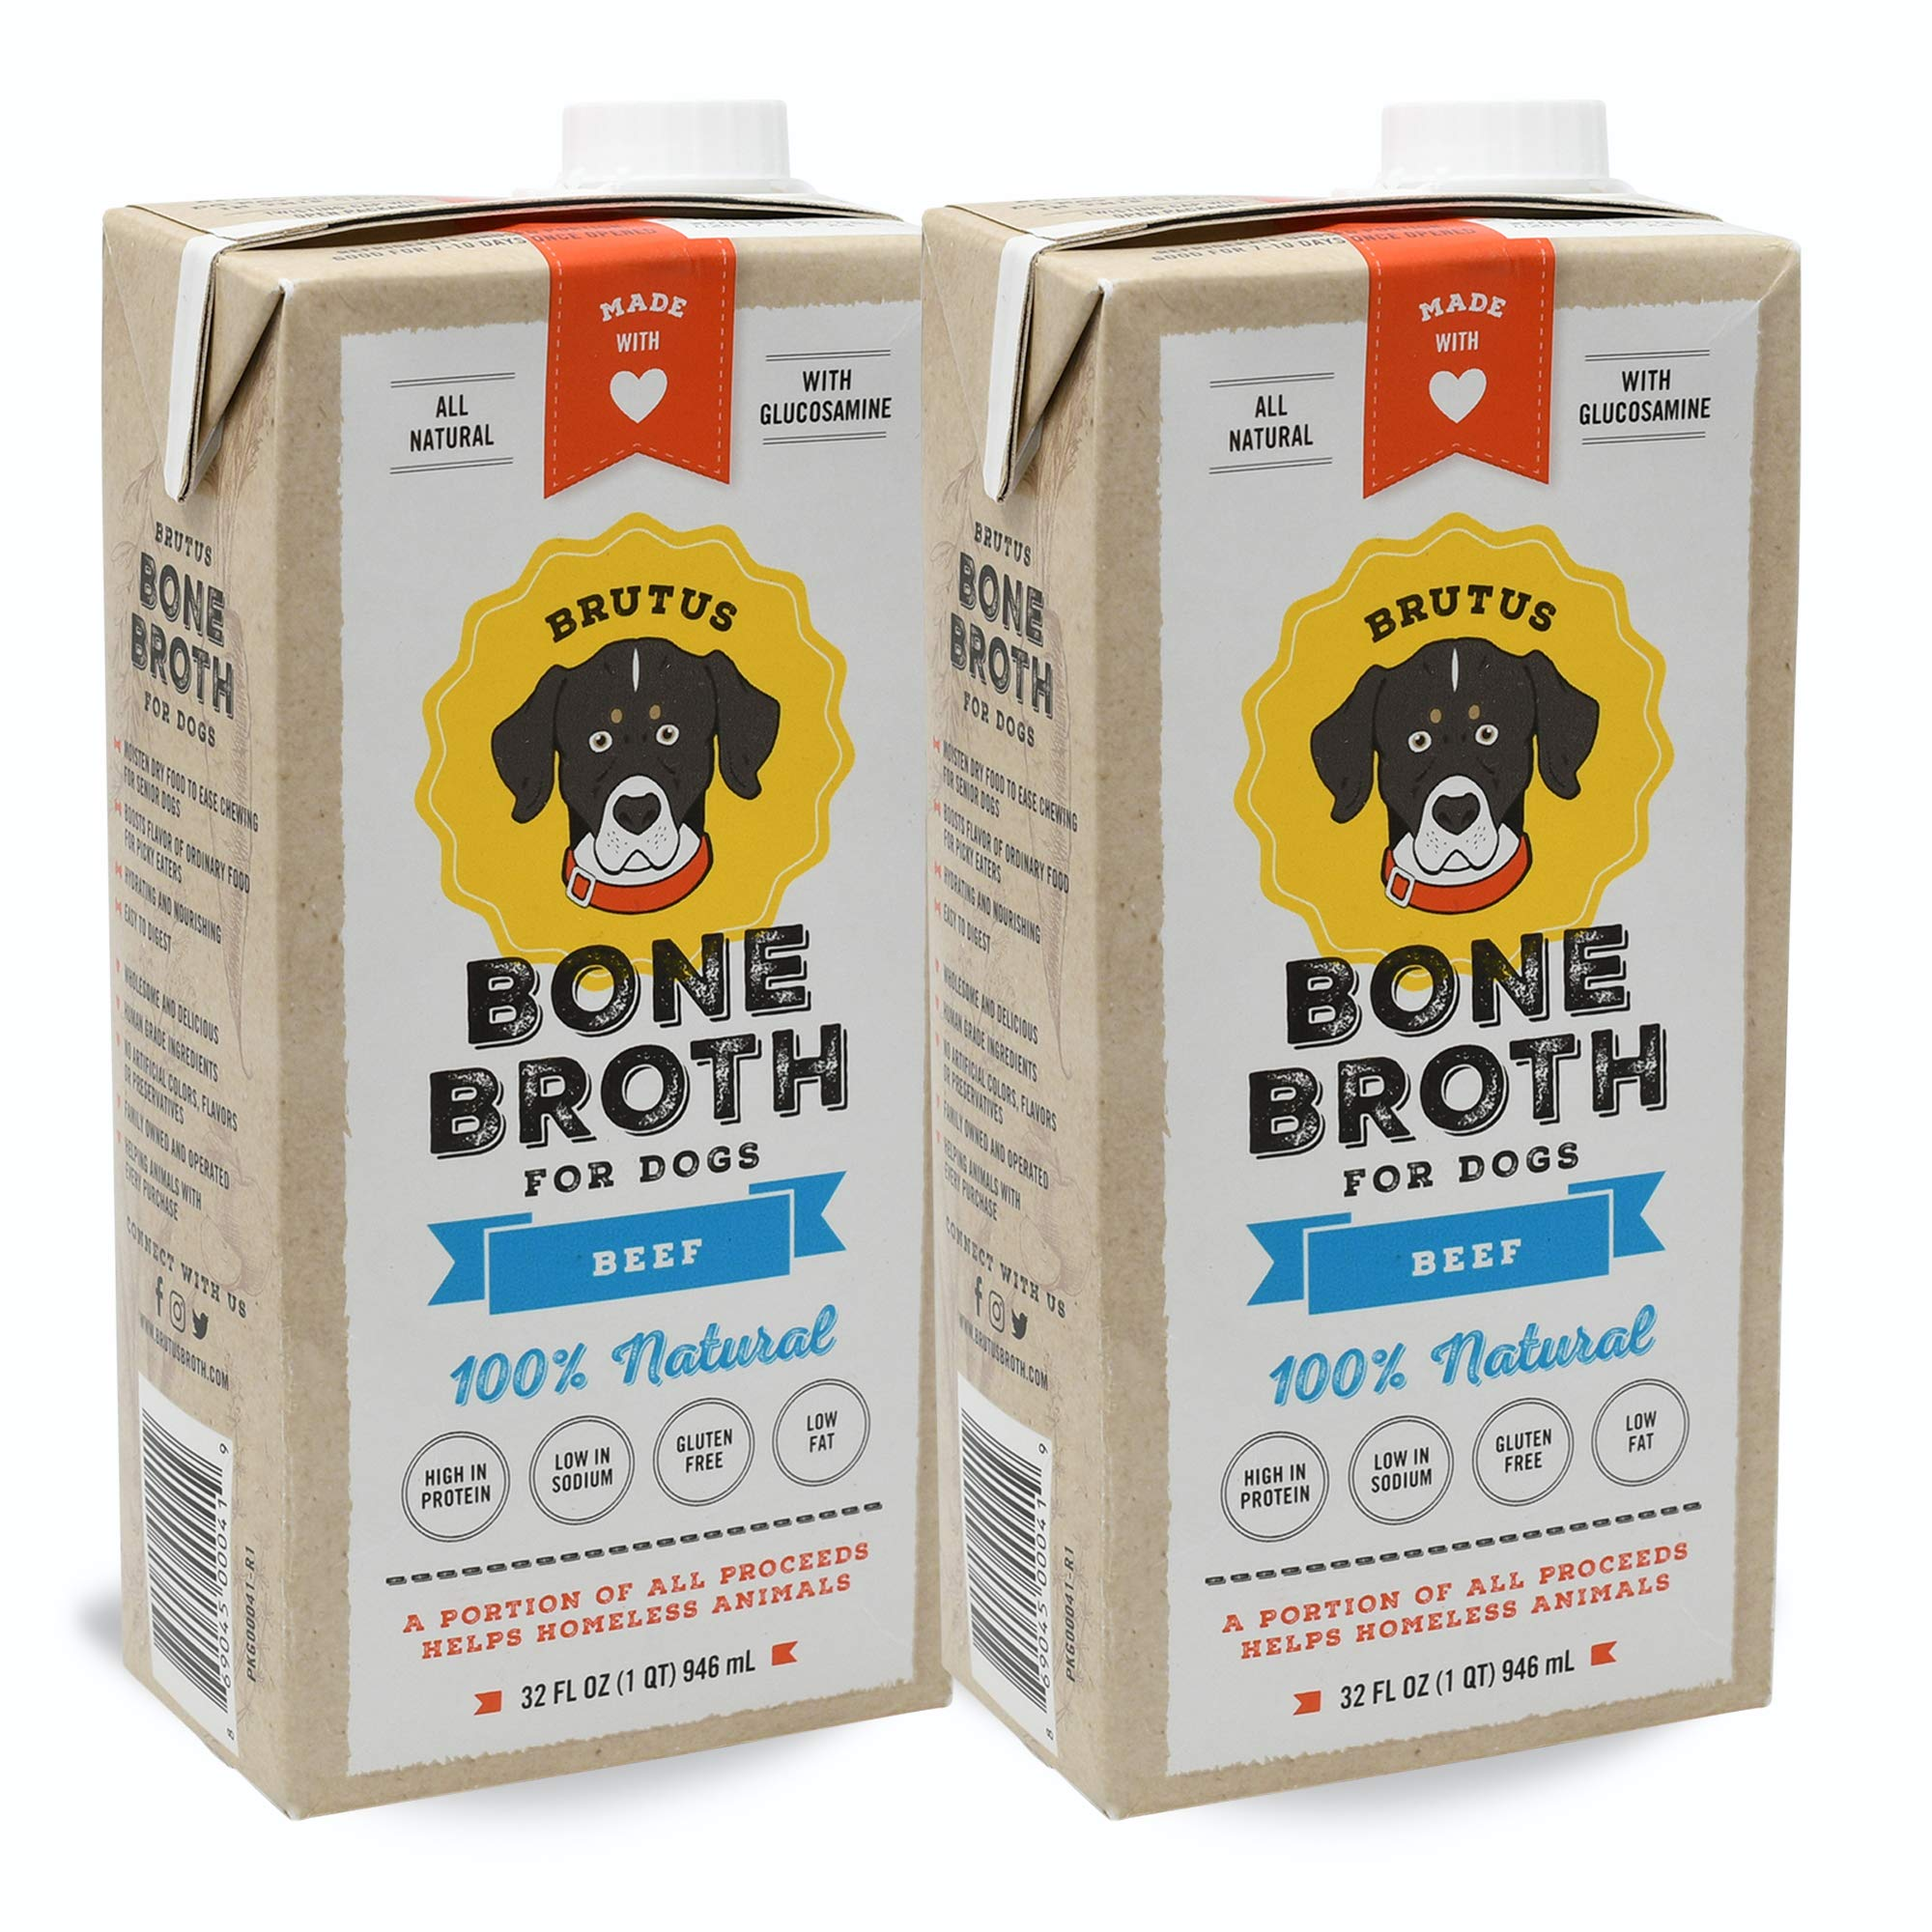 Brutus Bone Broth for Dogs | Beef 2-Pack (64 oz) Made in USA | Glucosamine & Chondroitin for Puppy Joints by Brutus